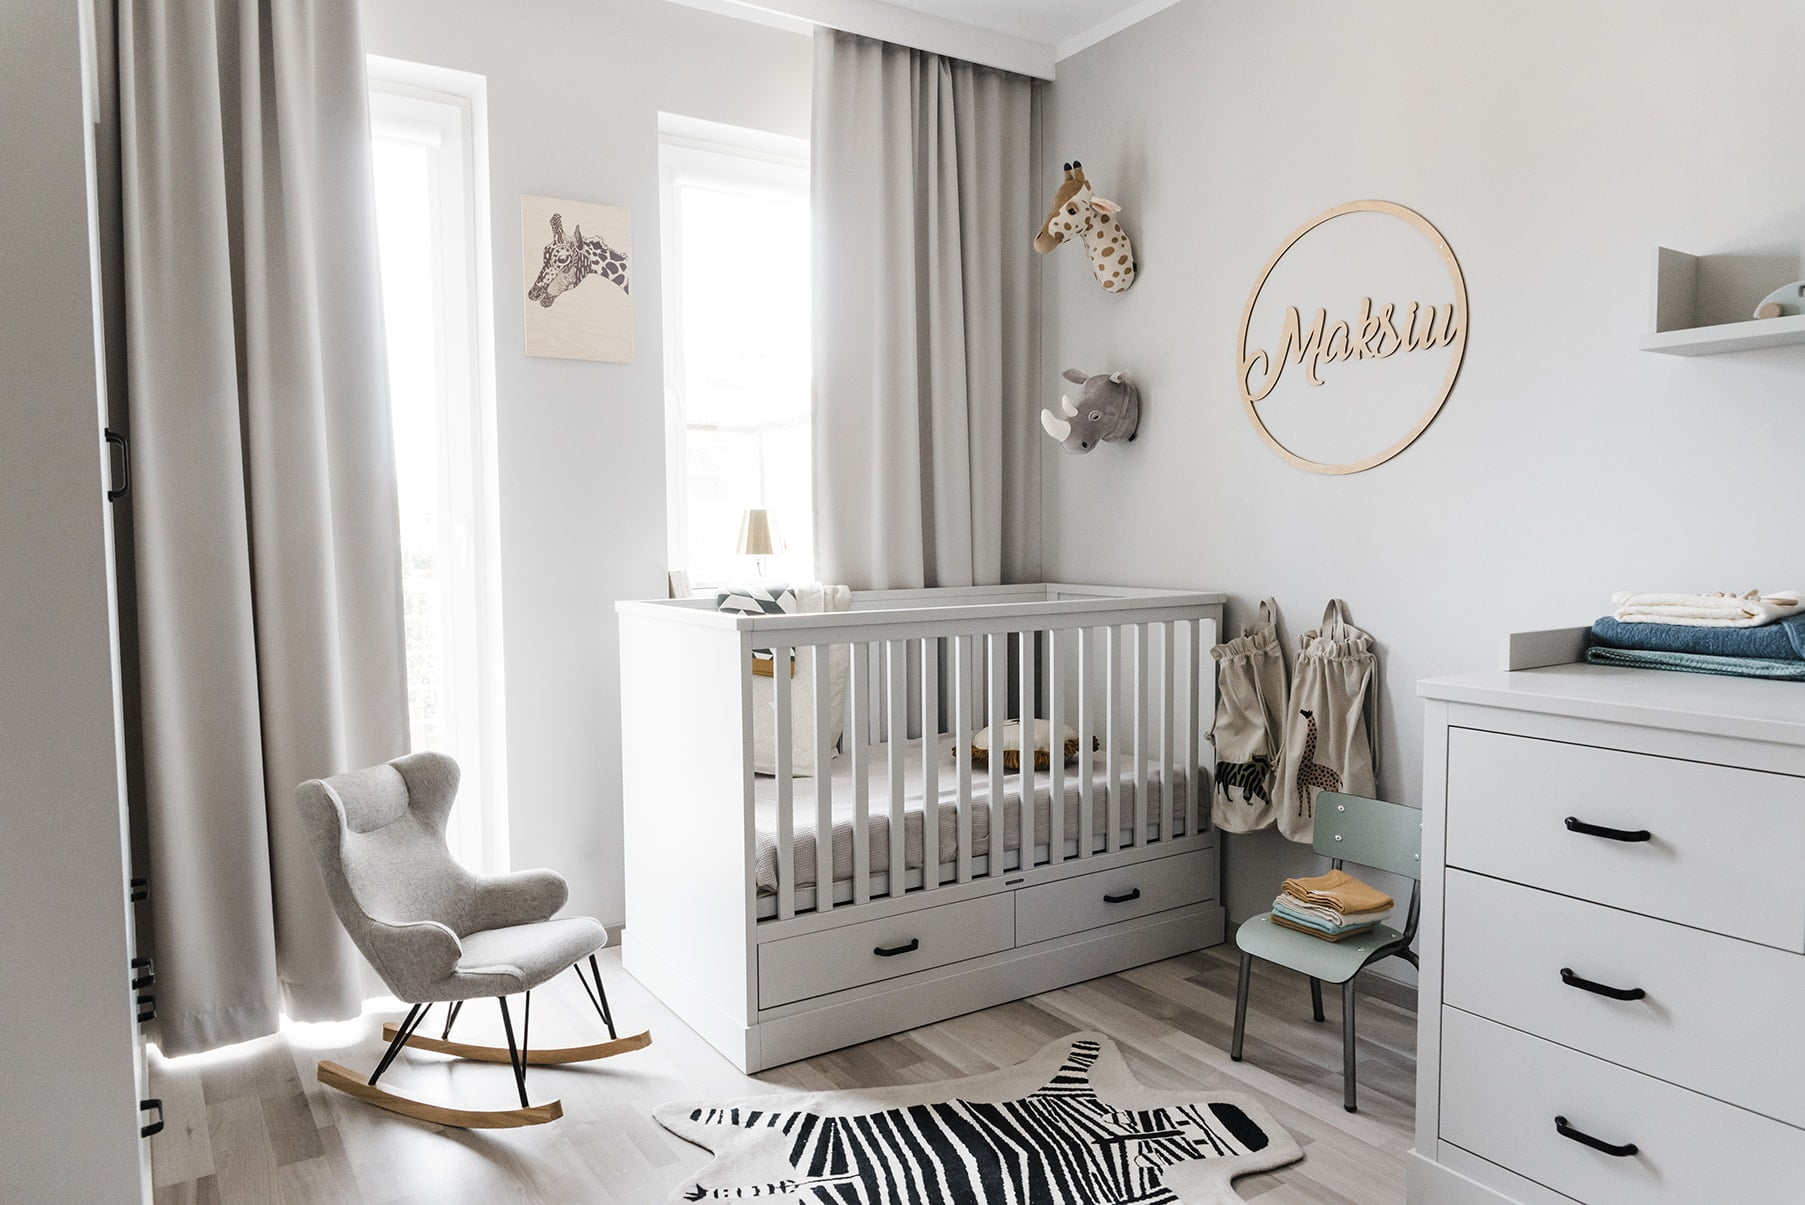 2-year-old room - how to decorate a child's room